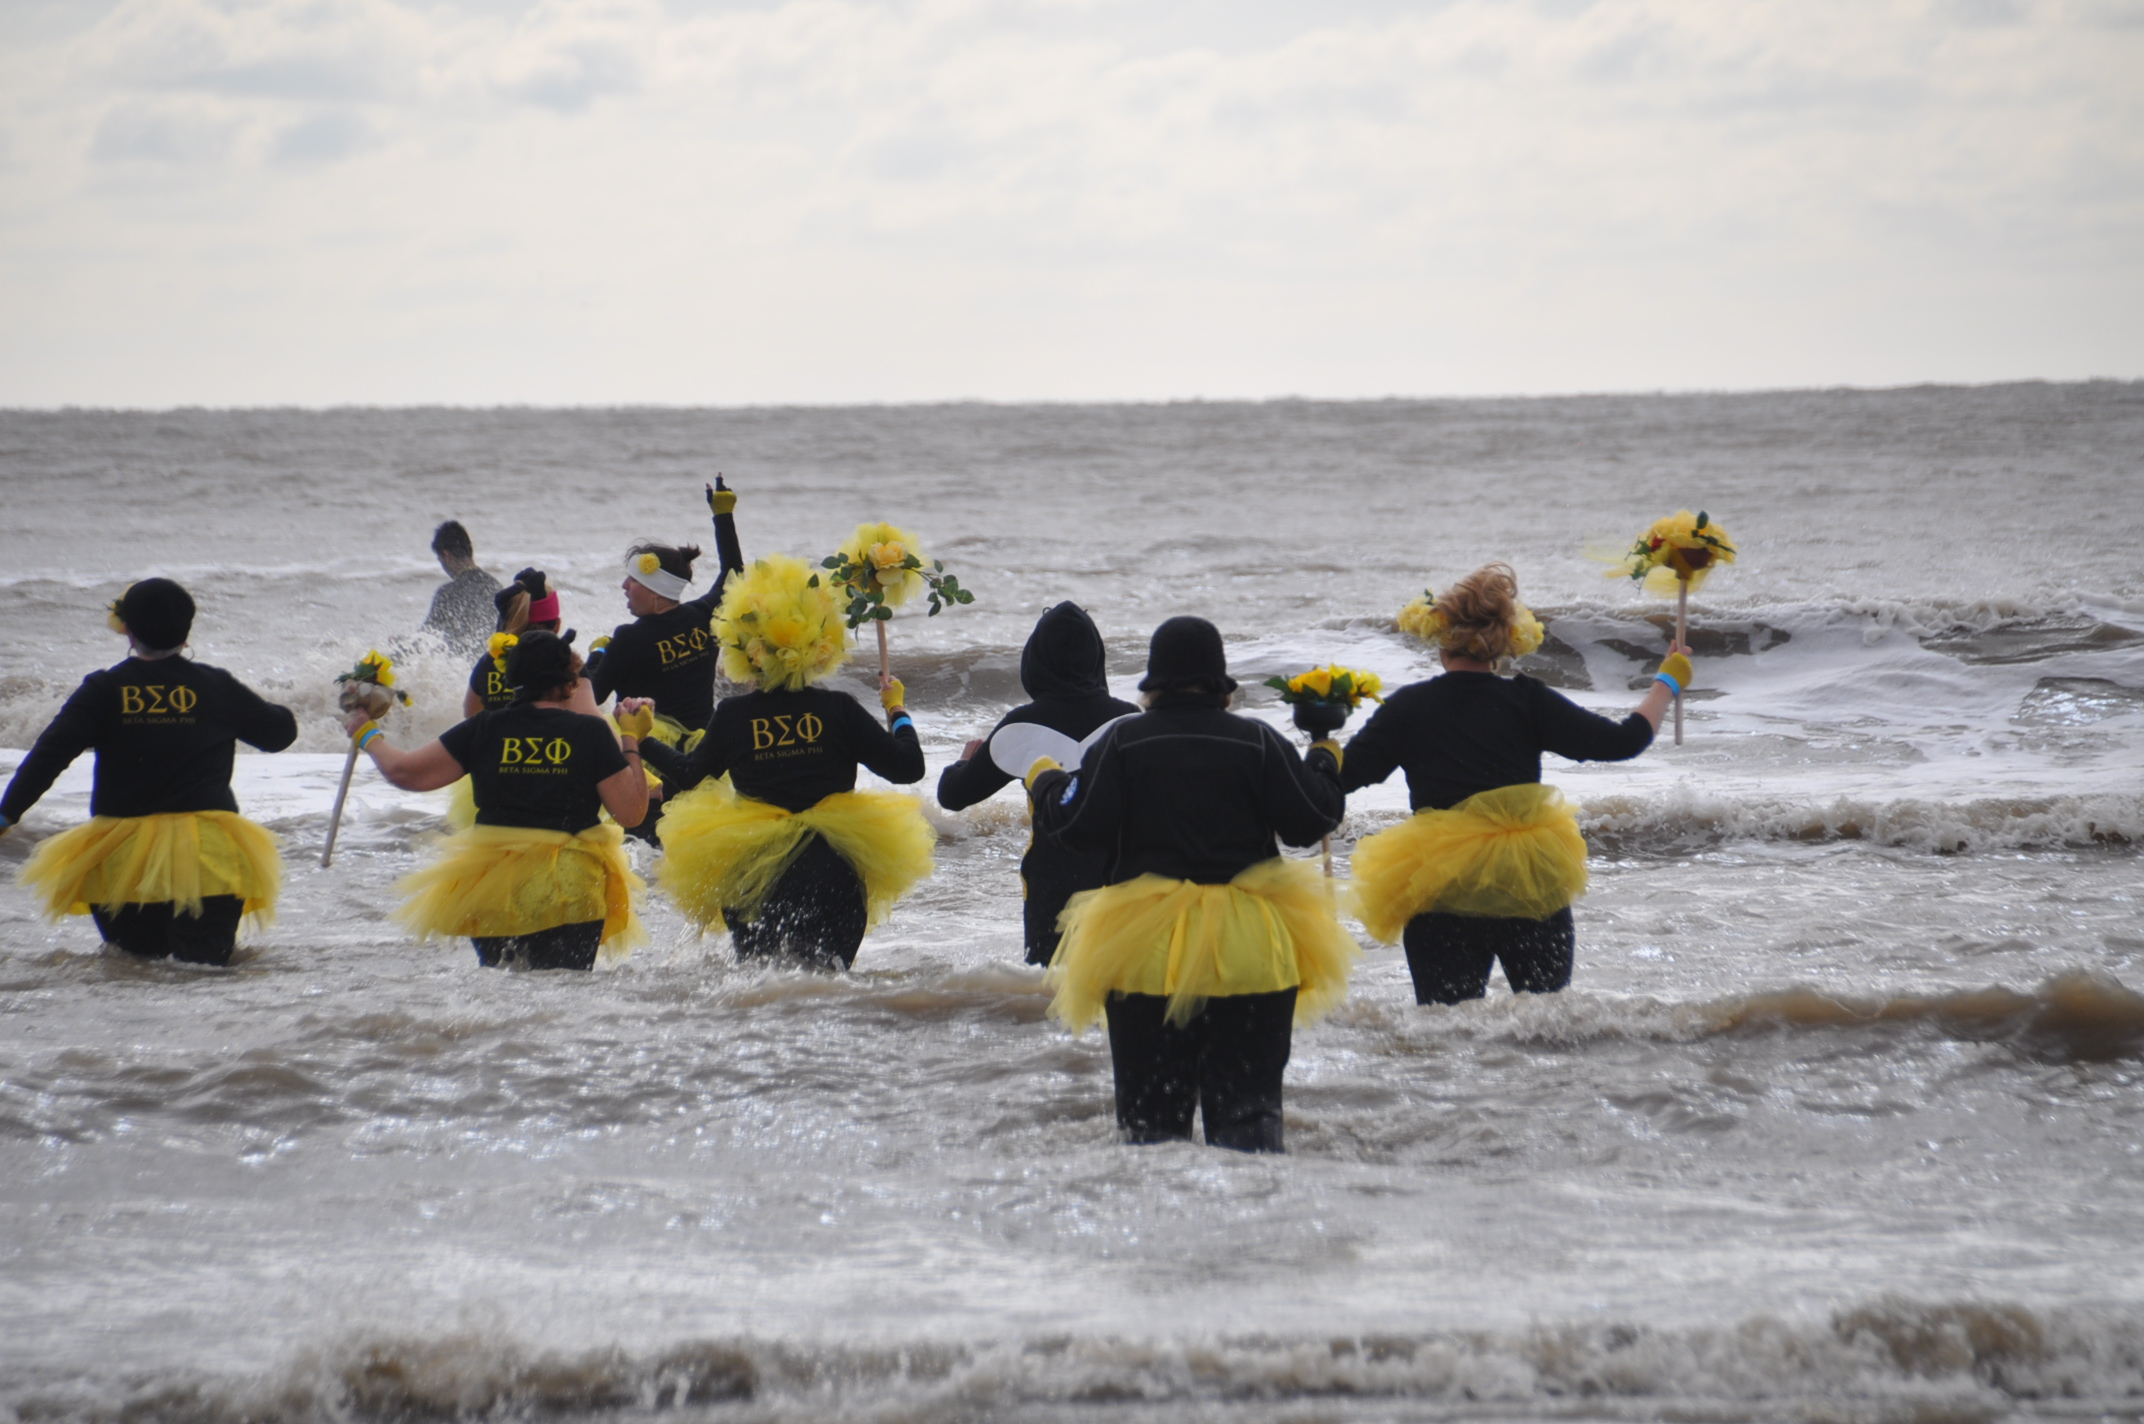 <div class='meta'><div class='origin-logo' data-origin='KTRK'></div><span class='caption-text' data-credit=''>More than 300 participants turned out for the 8th annual Polar Plunge at Stewart Beach in Galveston on Saturday, January 19, 2019.</span></div>